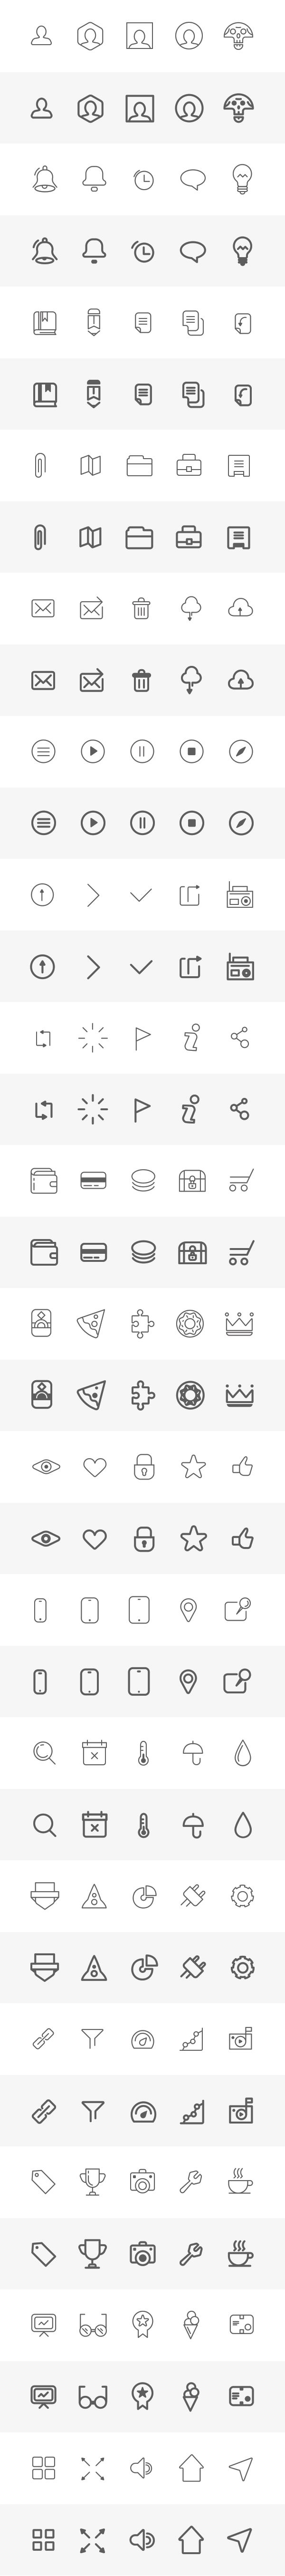 Build your wireframe with simple lines icons PSD file with 90 vector icons on in two versions 50 icons on